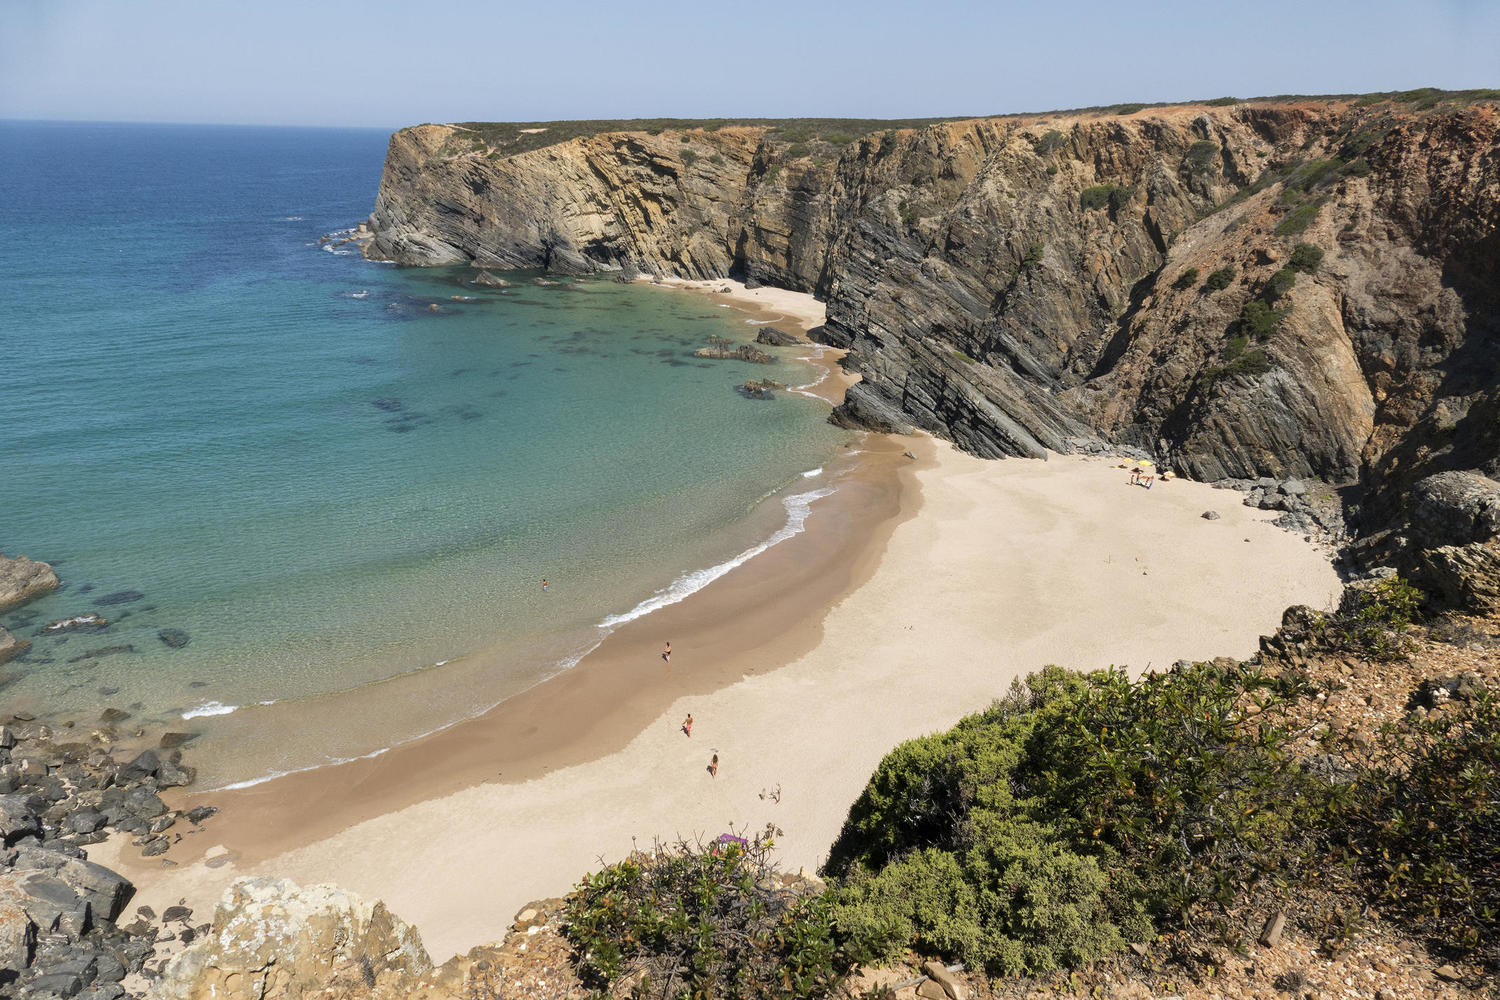 Empty beach on the Alentejo coast